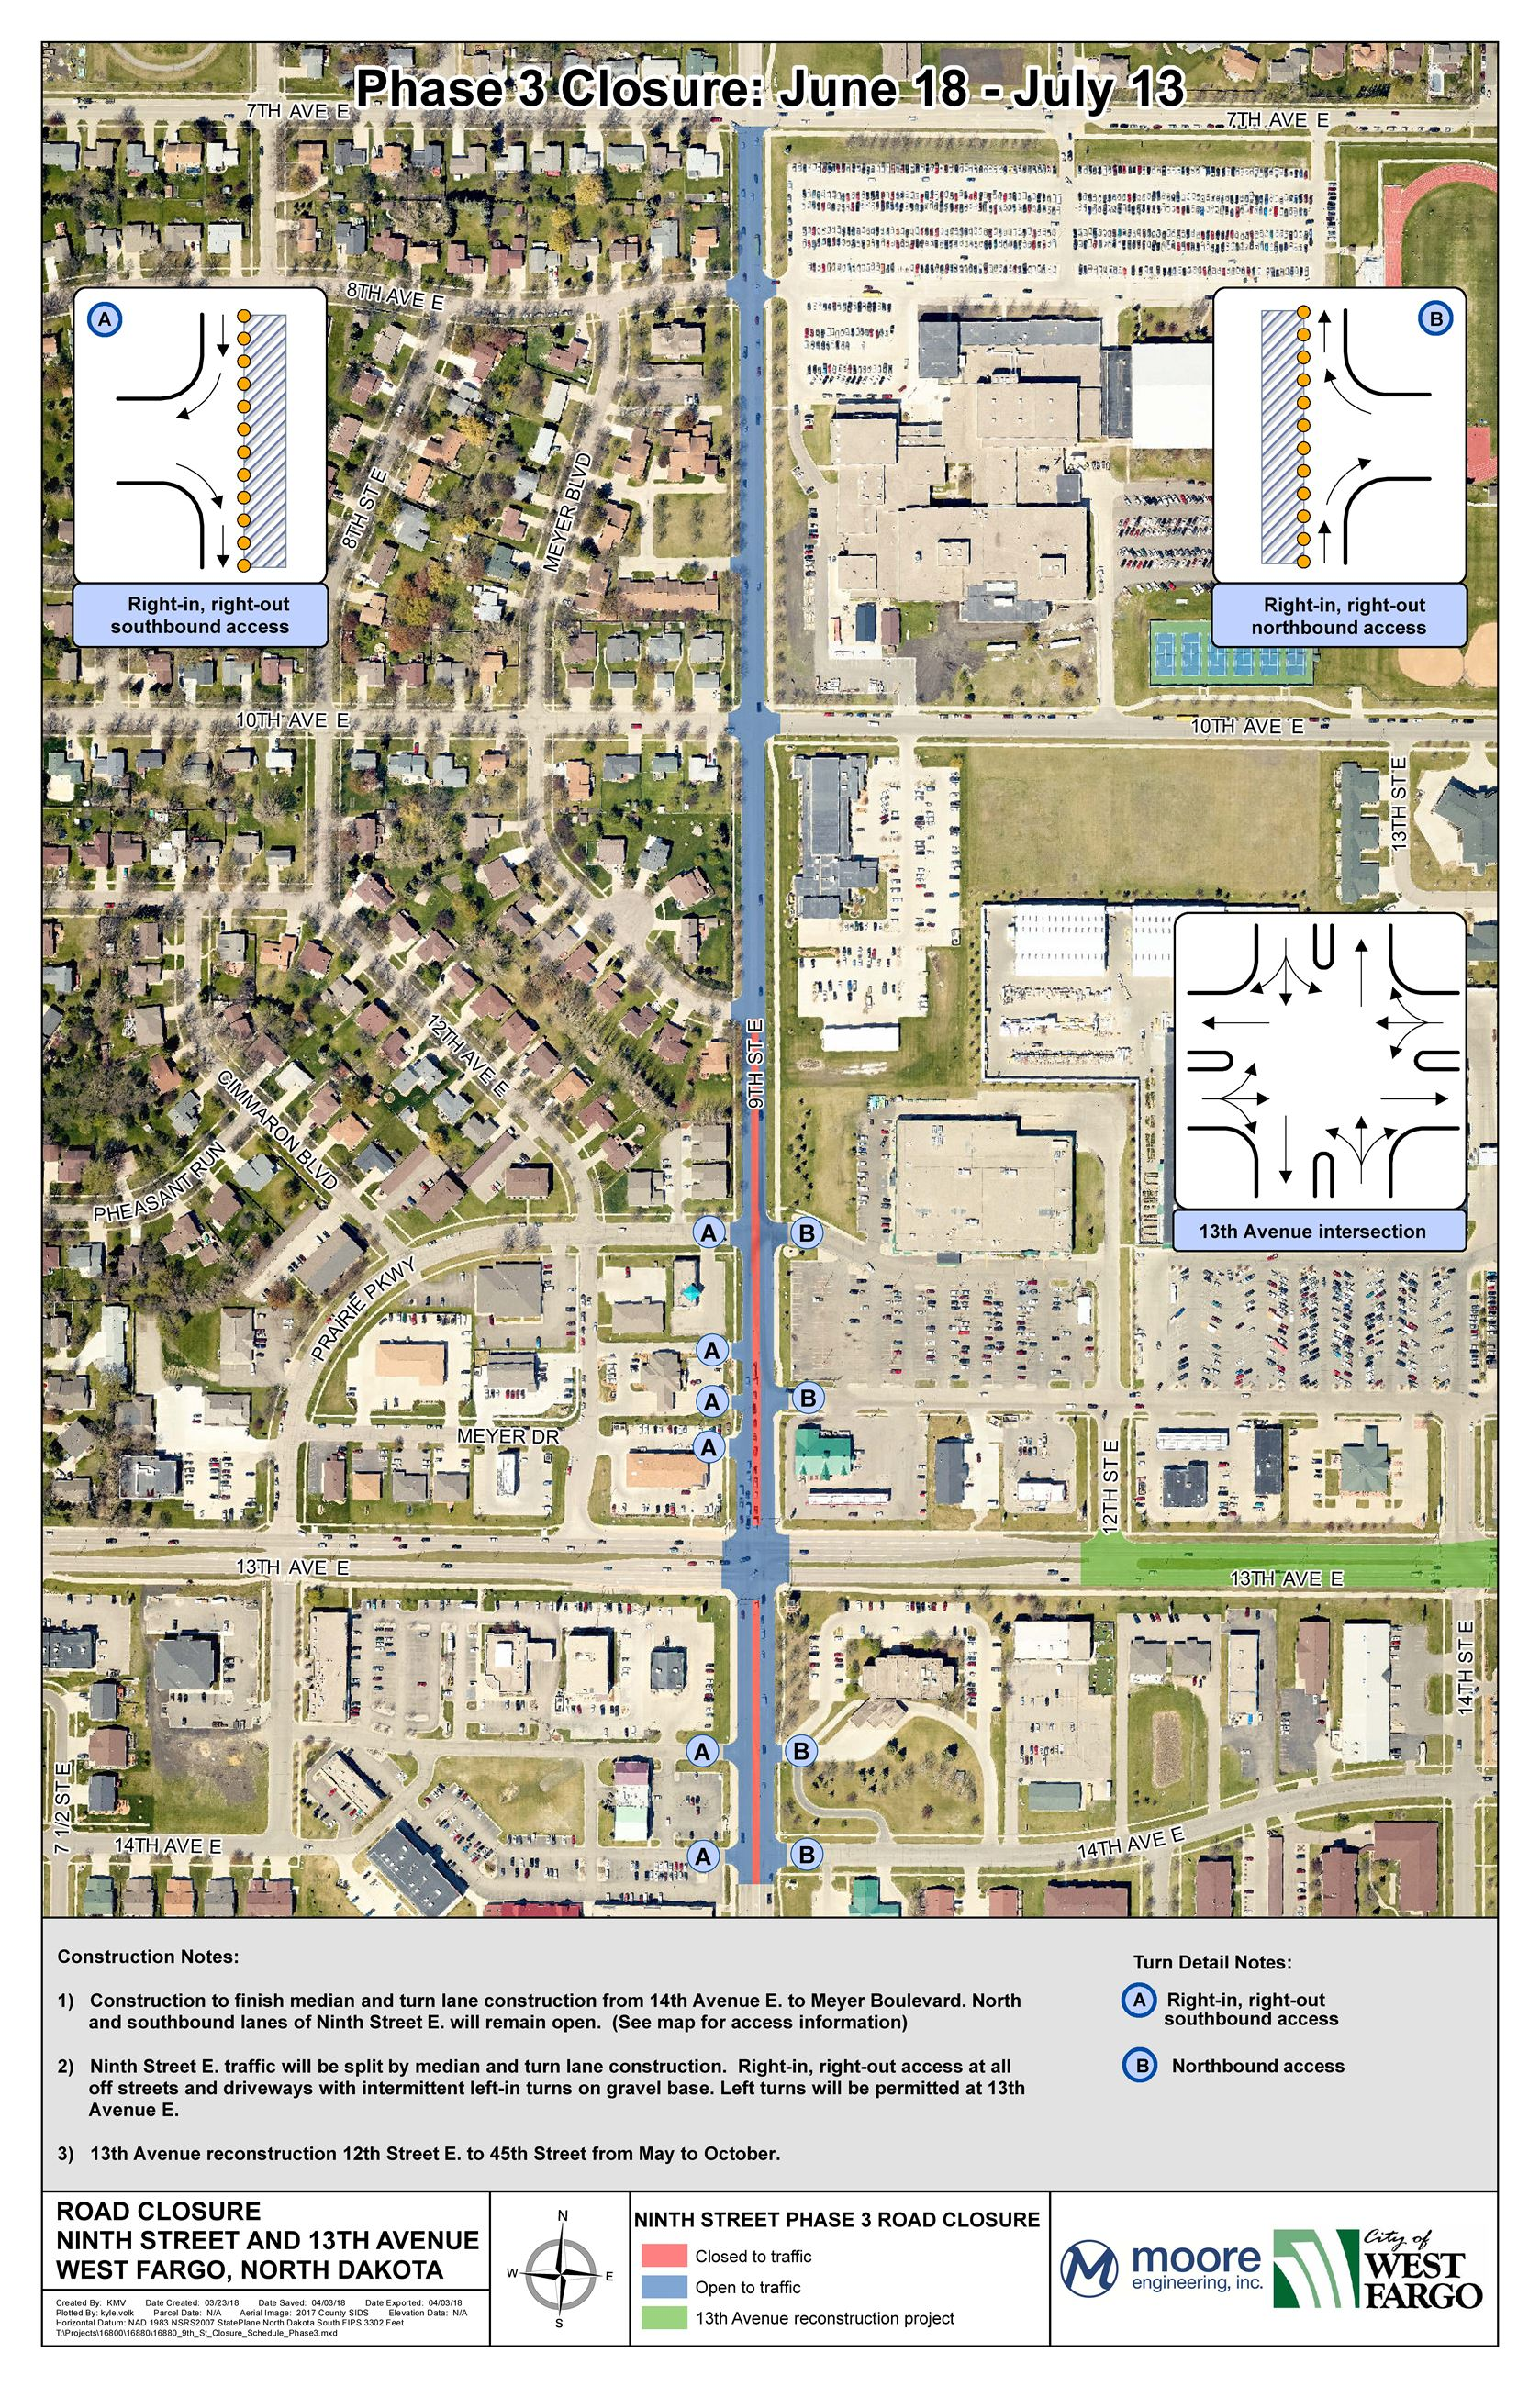 Ninth Street. E. and 13th Avenue E. Intersection Improvement Phase 3 Traffic Control